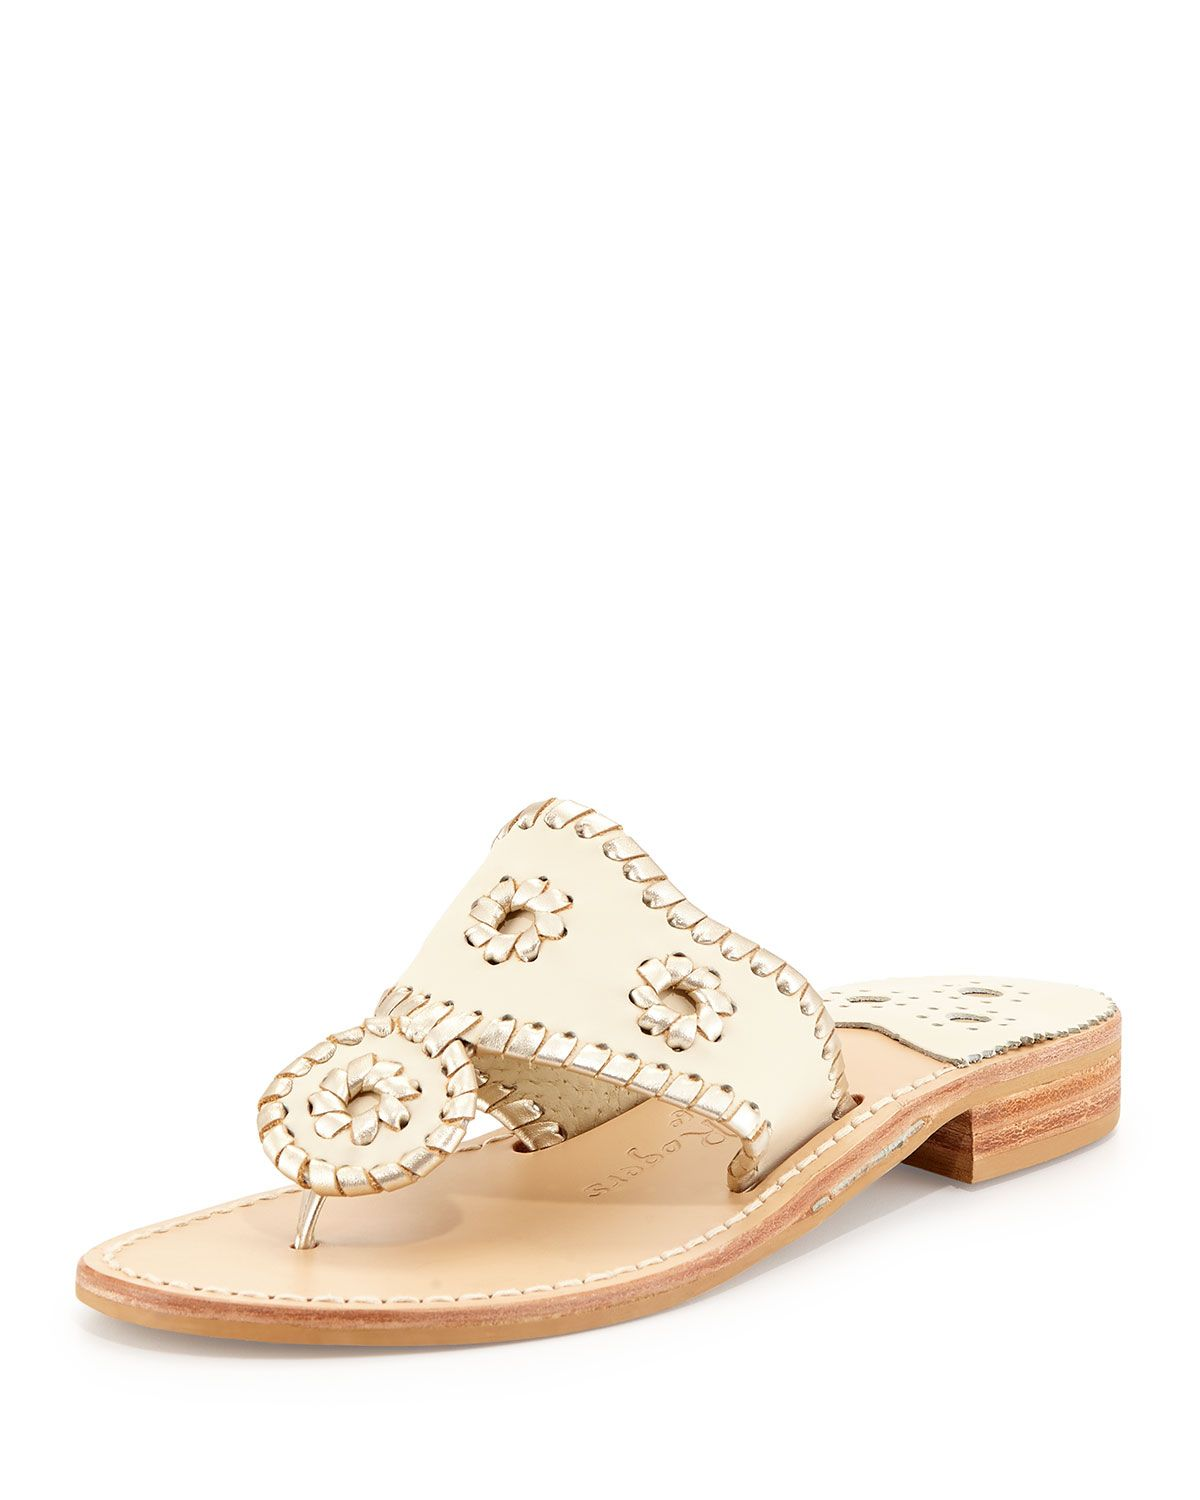 b03ada96b89 Palm Beach Whipstitch Thong Sandal